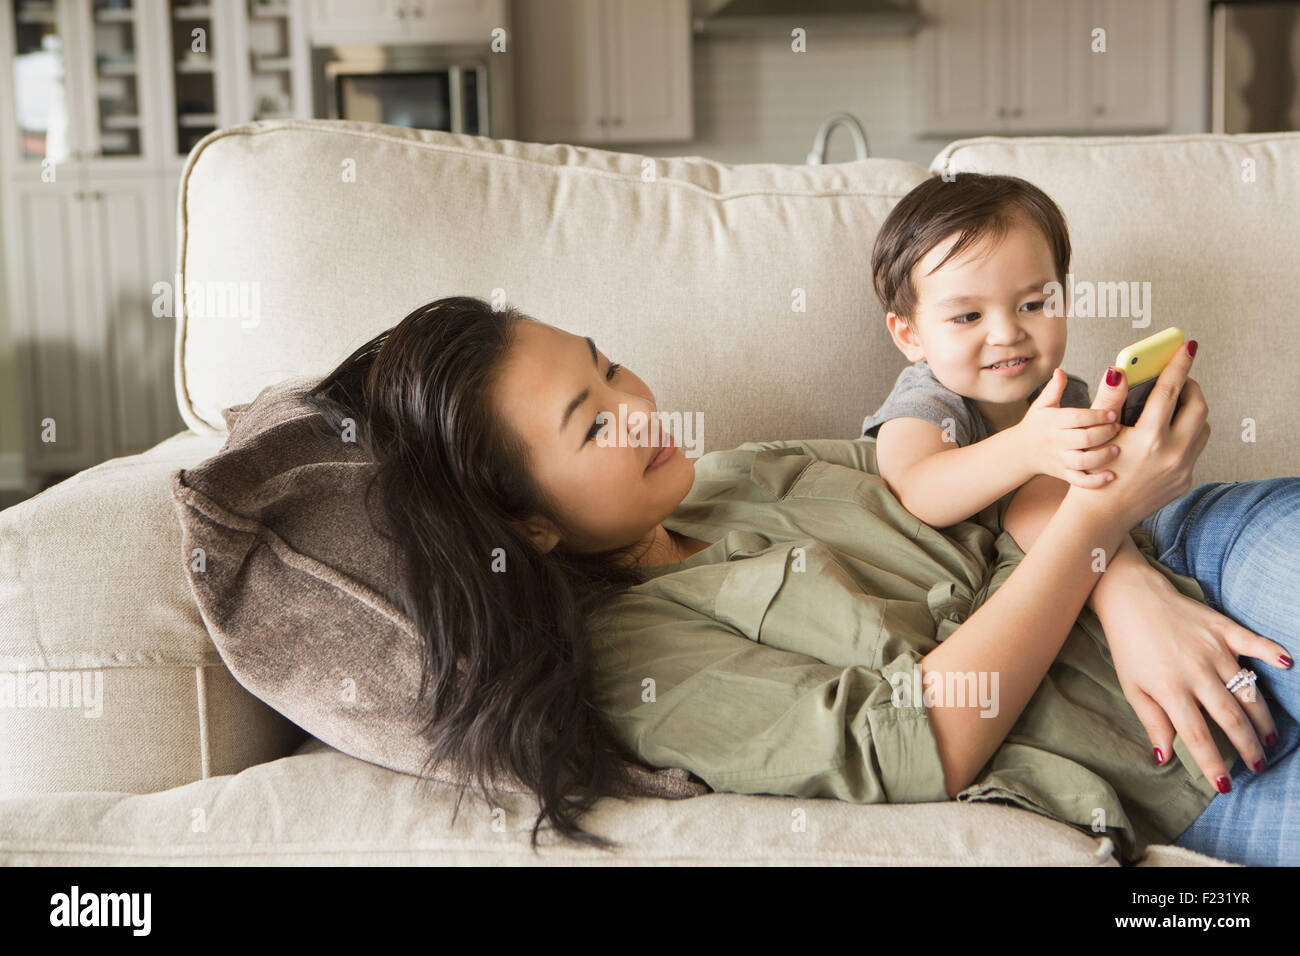 Woman lying on a sofa, smiling, cuddling with her young son and looking at a cell phone. Stock Photo